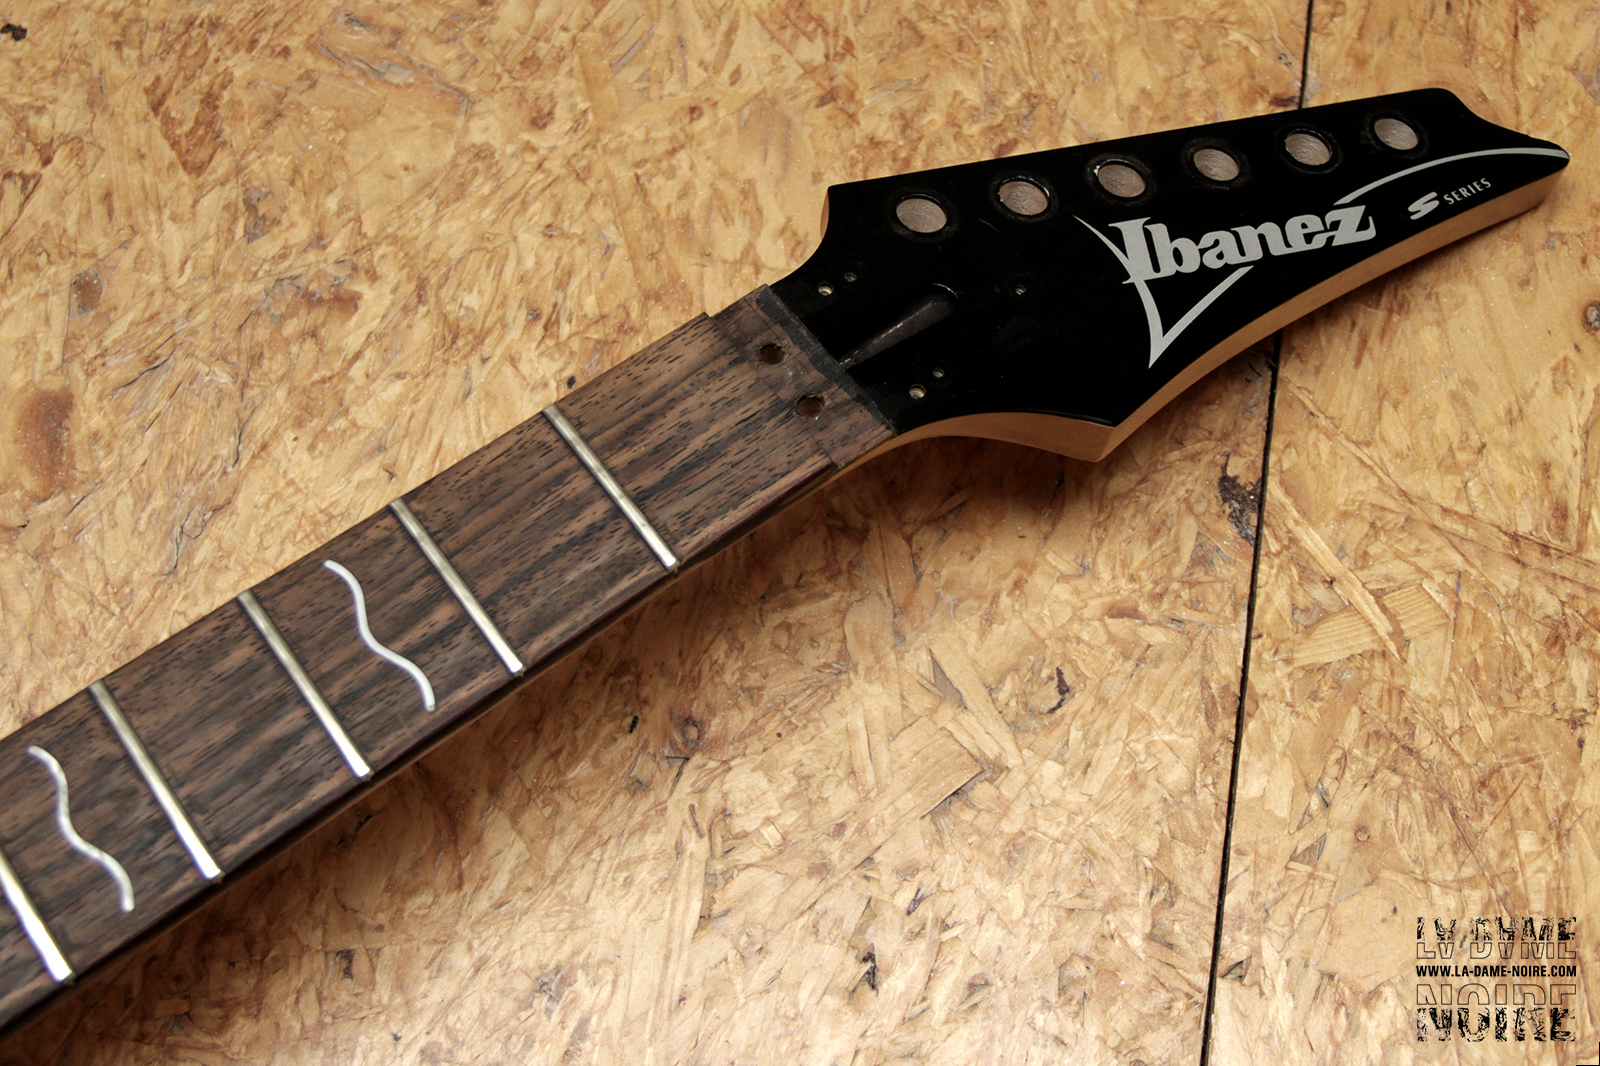 Head of Ibanez S470 guitar free from its tuners